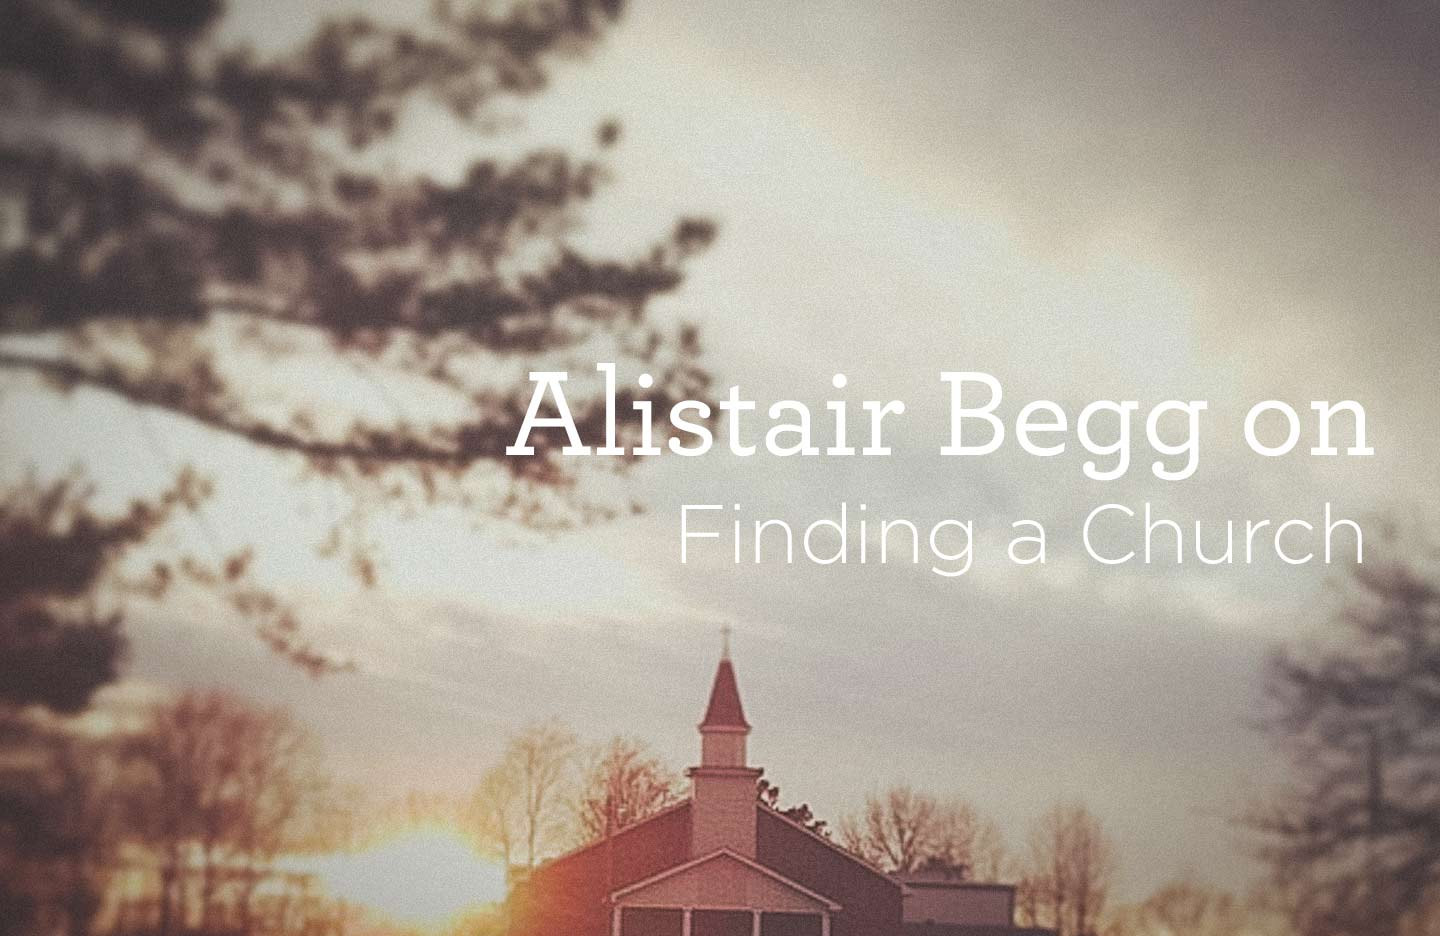 Alistair Begg on Finding a Church